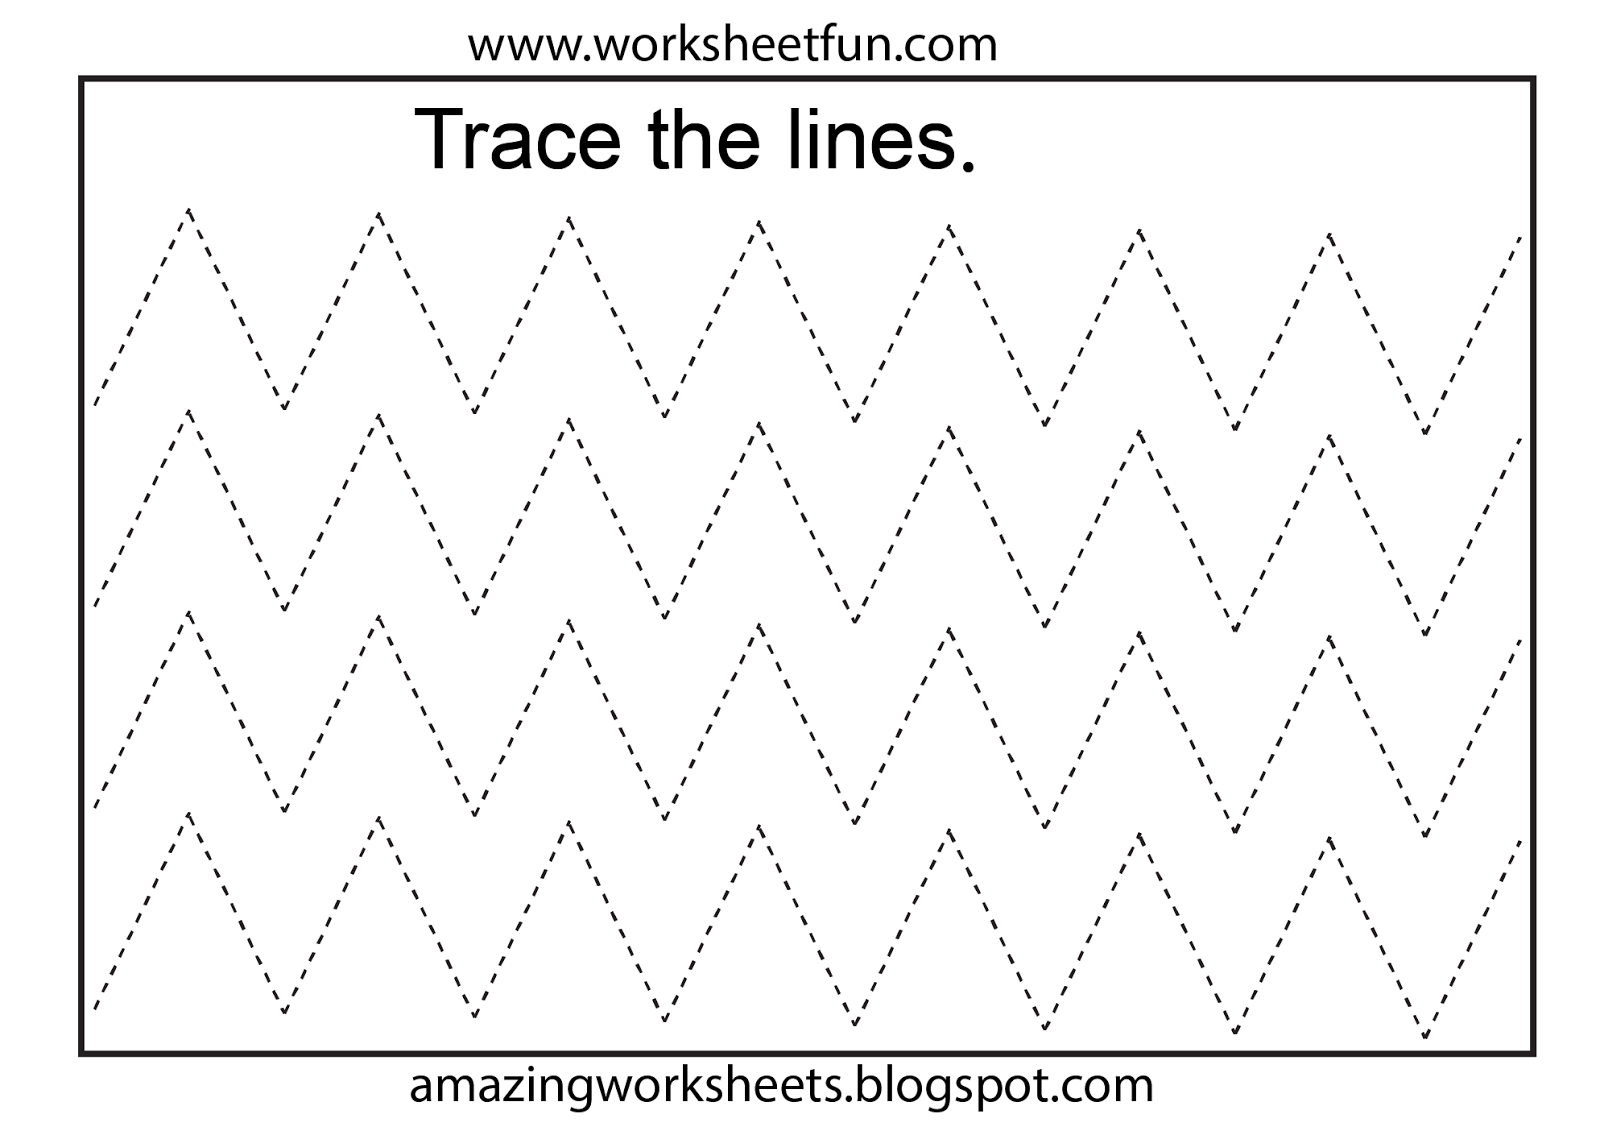 Free Worksheet Fine Motor Worksheets 78 best images about tracing worksheets on pinterest fine motor worksheetfun free printable toddler worksheets